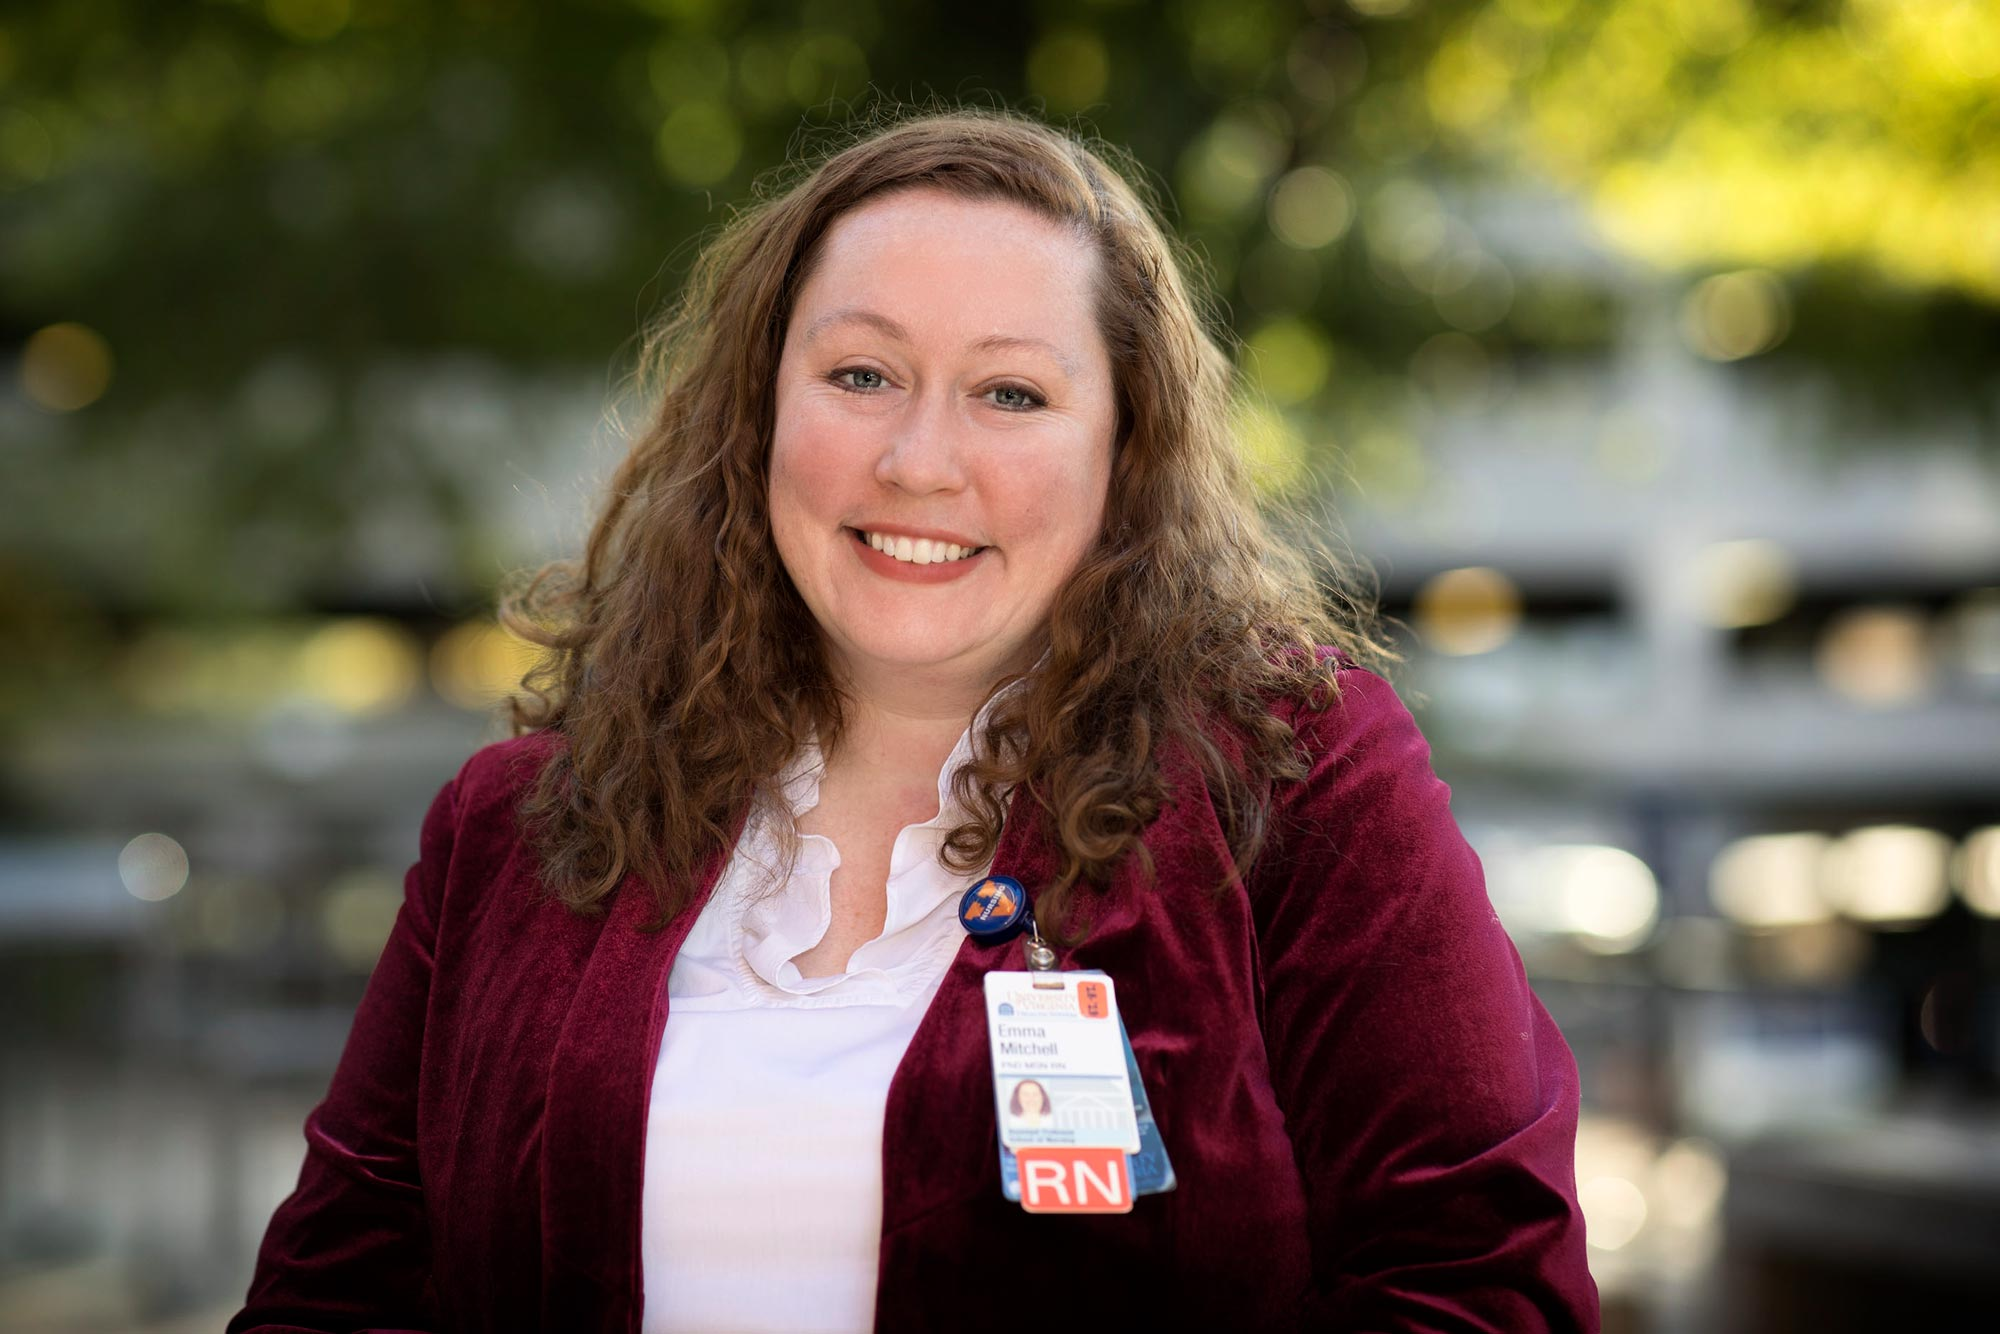 Emma Mitchell, an assistant professor of nursing, studied the effectiveness of combining peer health navigators with inexpensive self-testing kits in detecting and treating HPV.